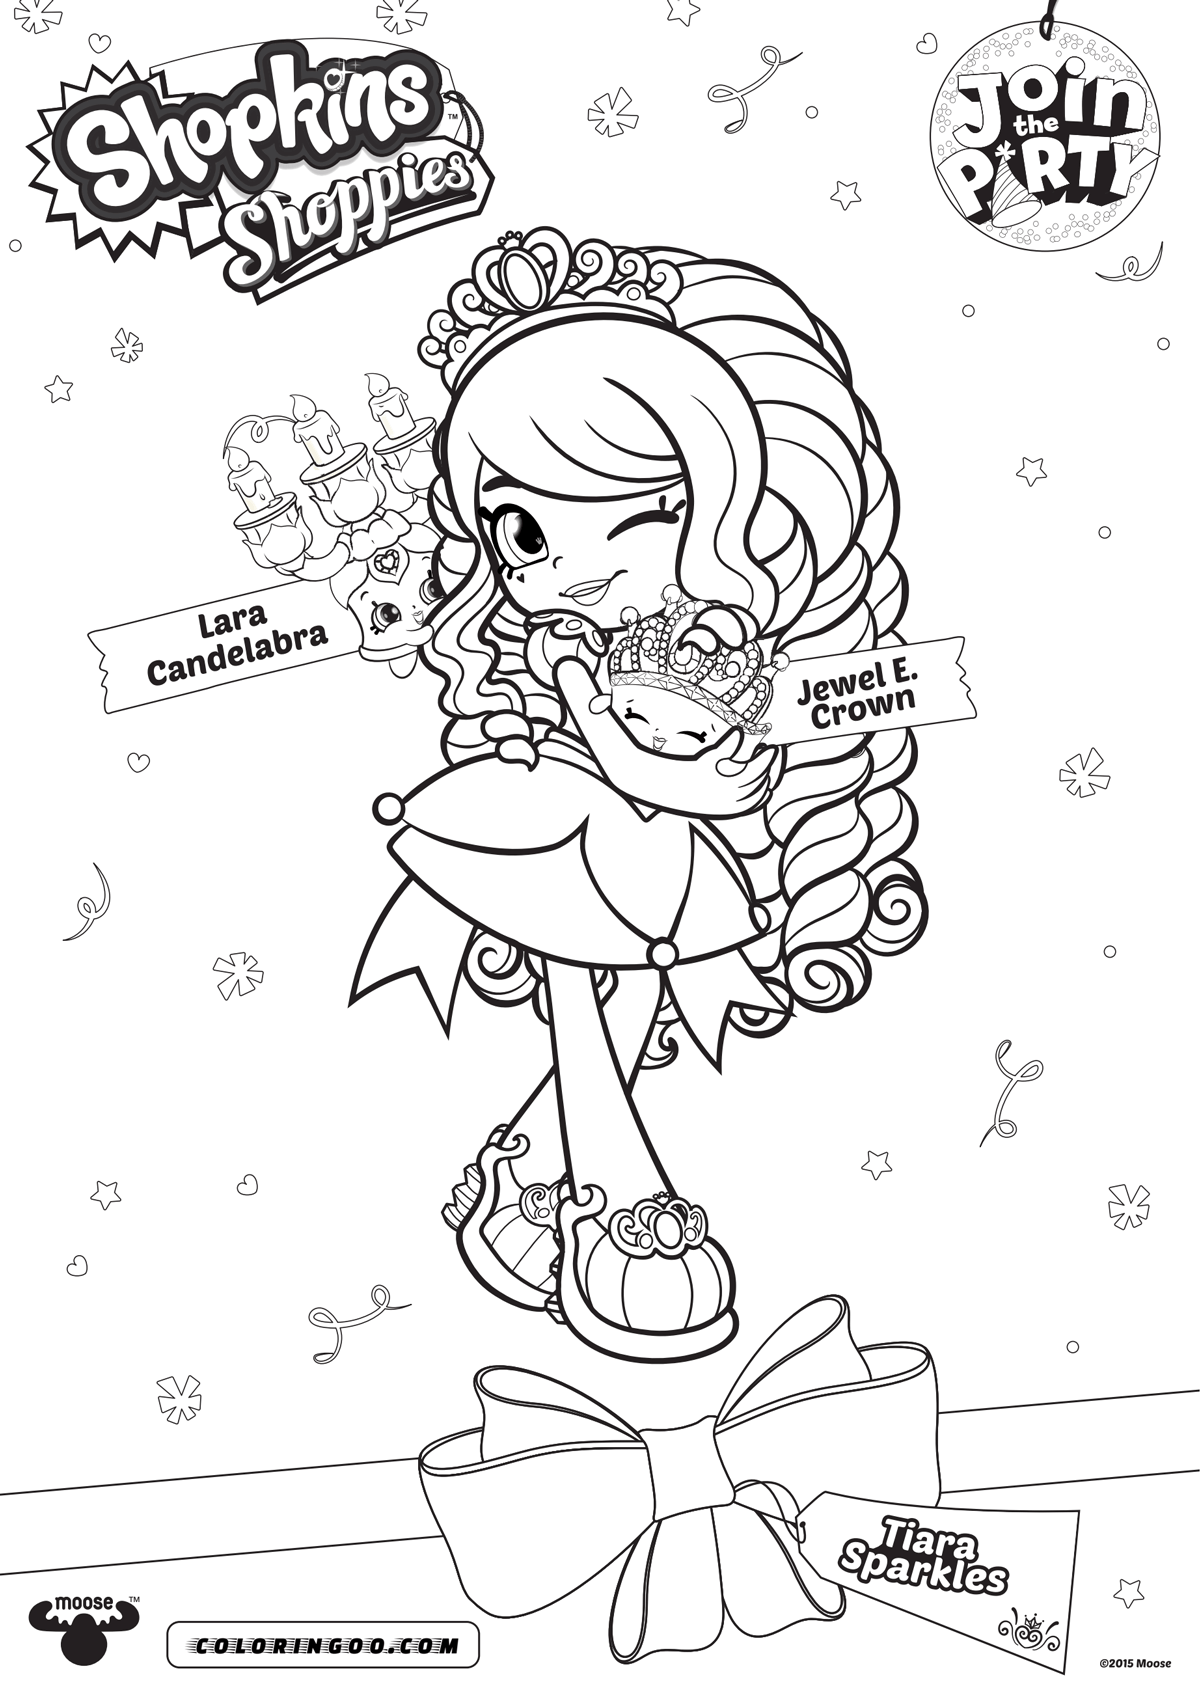 Shopkins Shoppies Tiara Sparkles Coloring Pages